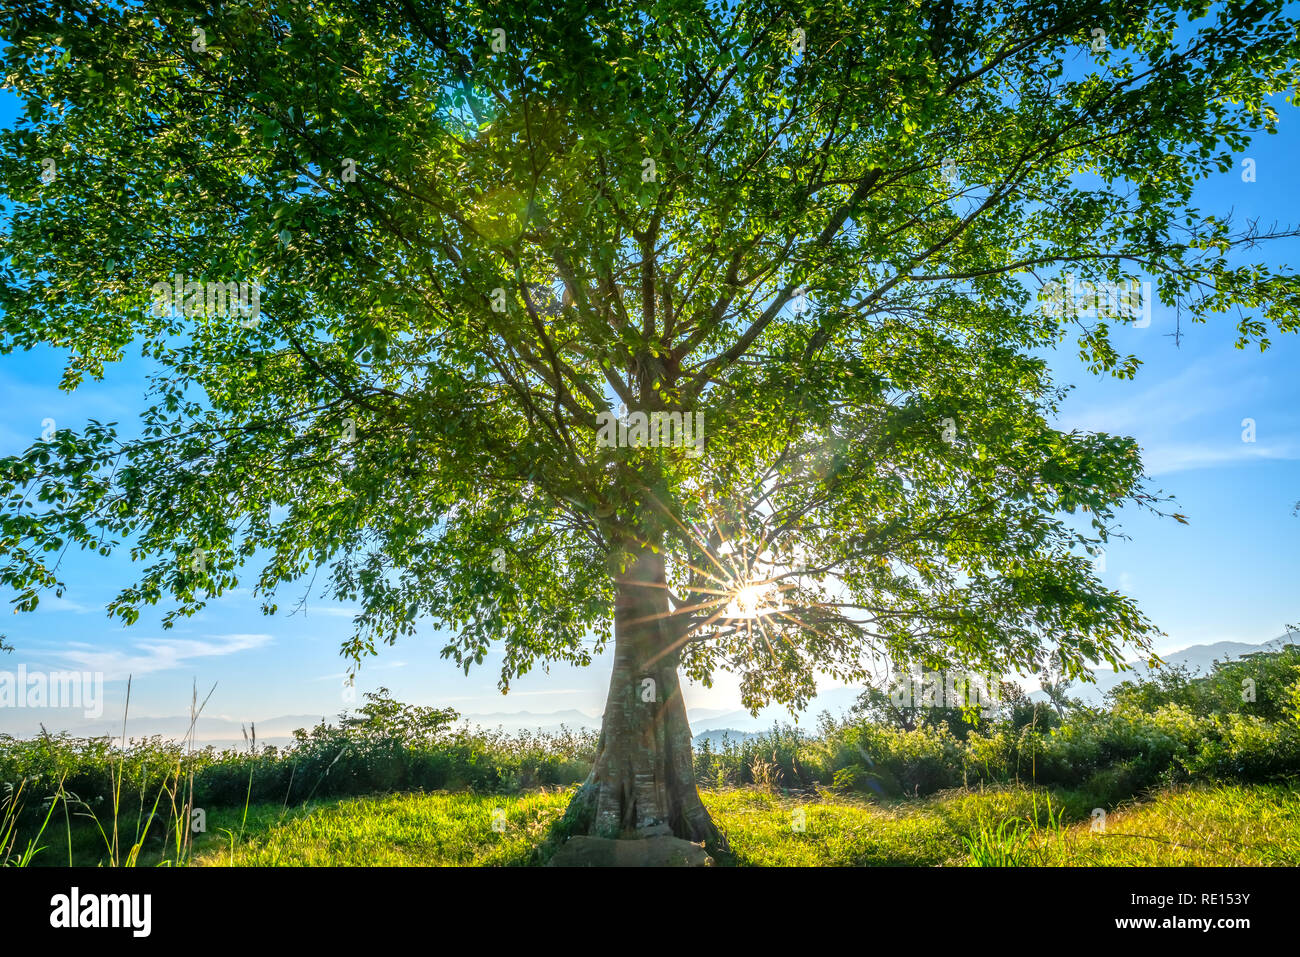 The old Bodhi tree is in the time of changing leaves in winter when the sun shines through the tree to welcome the new day in the highlands of Vietnam Stock Photo